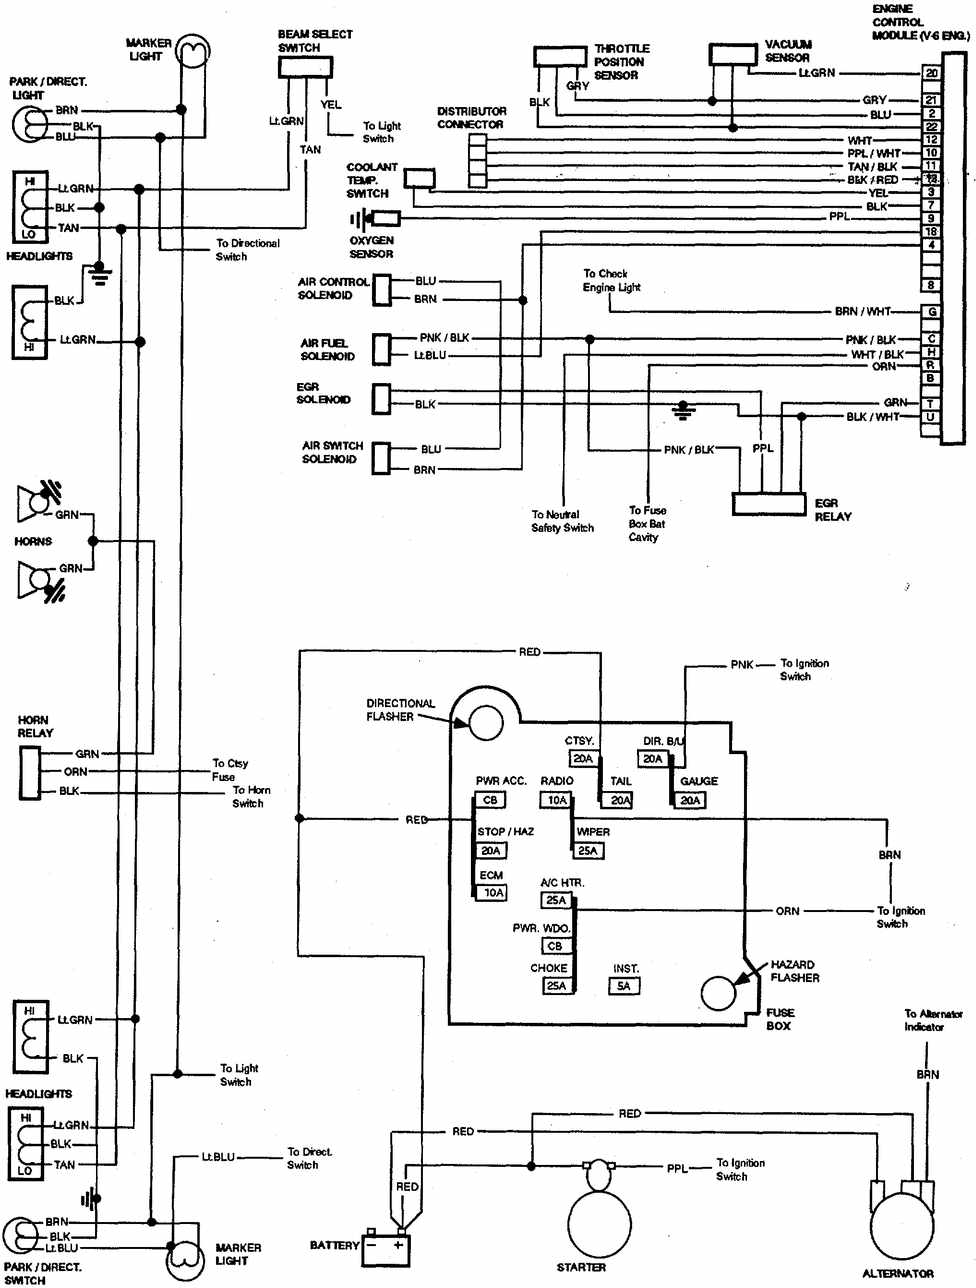 Power Chair Wiring Diagram further Snorkel Lift Wiring Diagram further US4636962 furthermore US8210295 additionally Maxon Lift Wiring Diagram. on ricon wiring diagrams